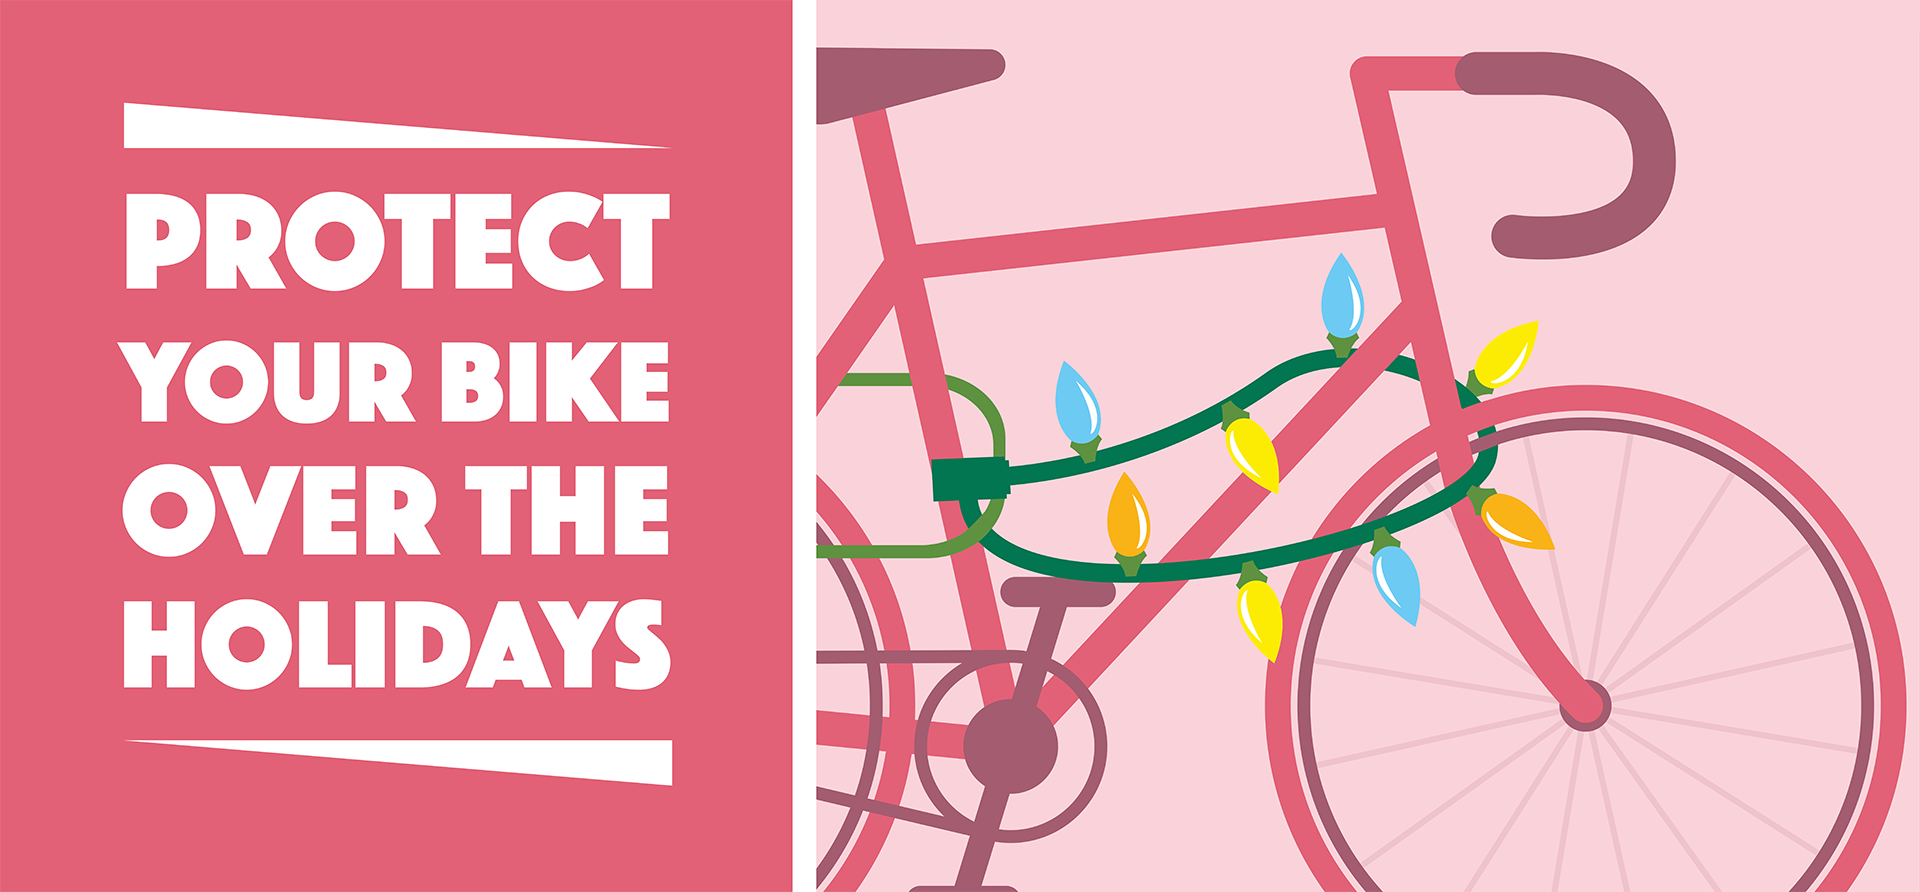 Protect Your Bike Over the Holidays banner